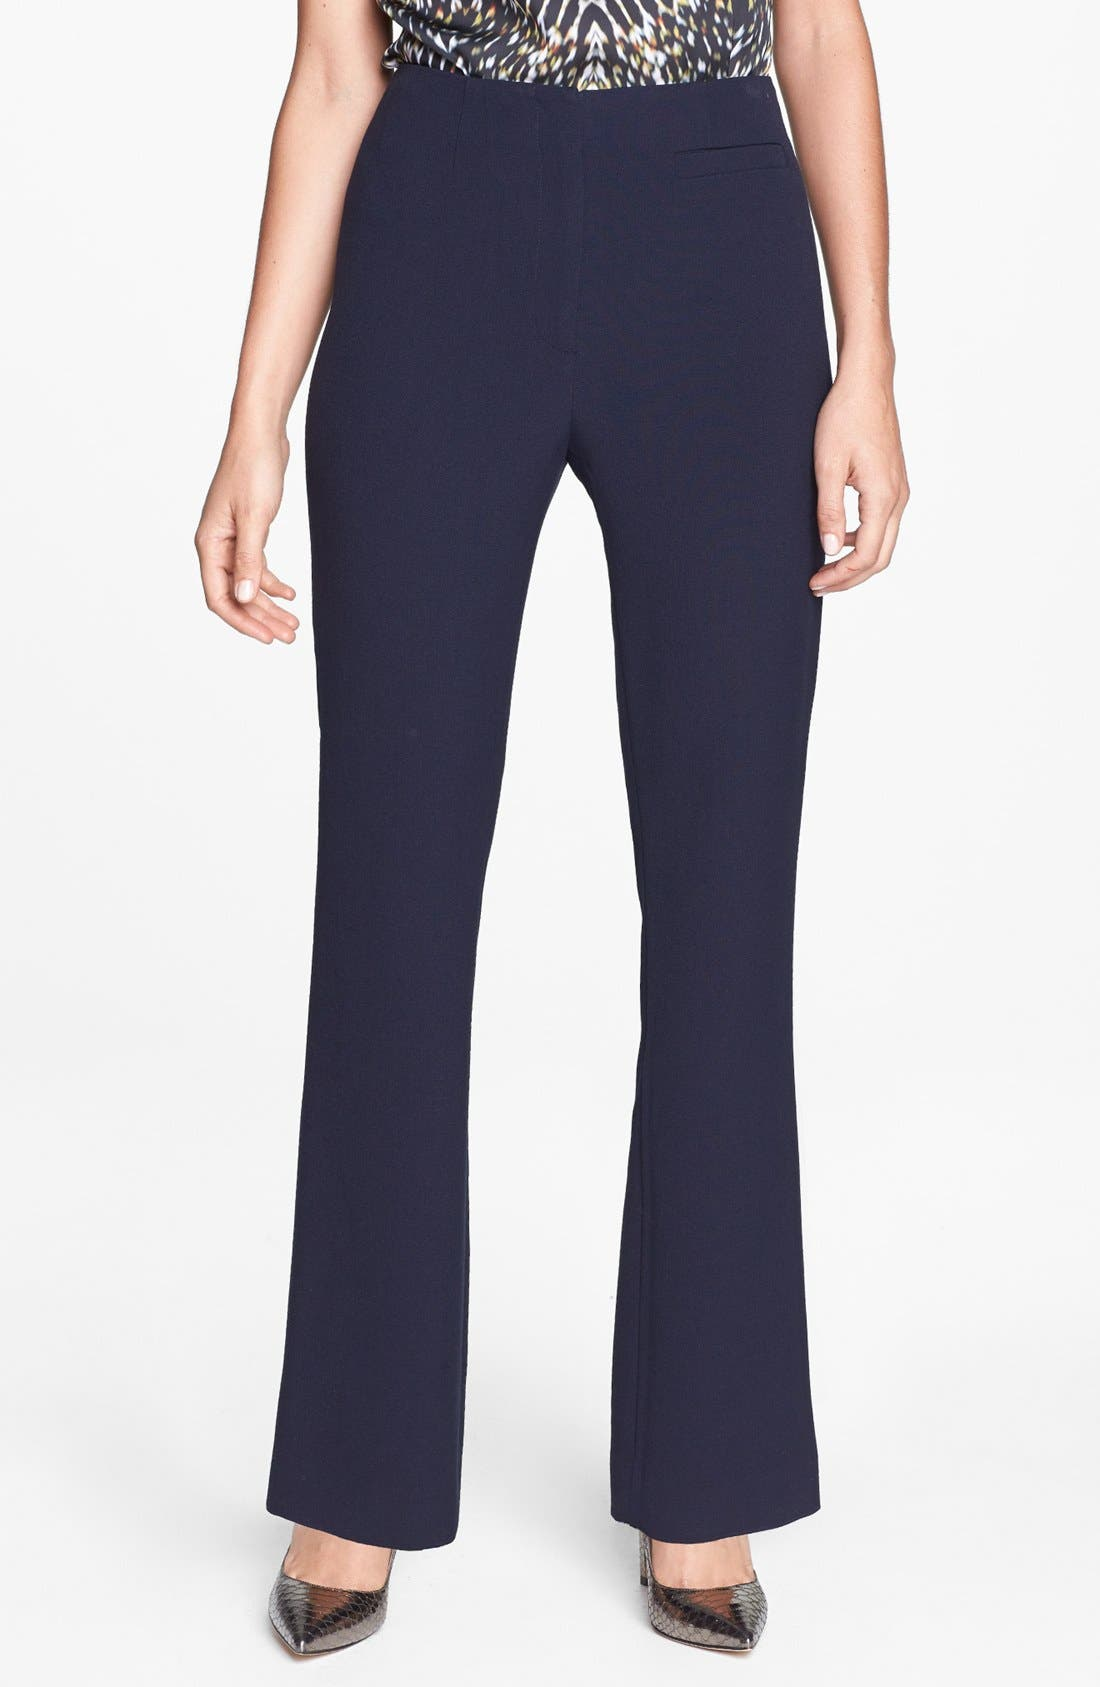 Alternate Image 1 Selected - Adrianna Papell Hollywood Waist Pants